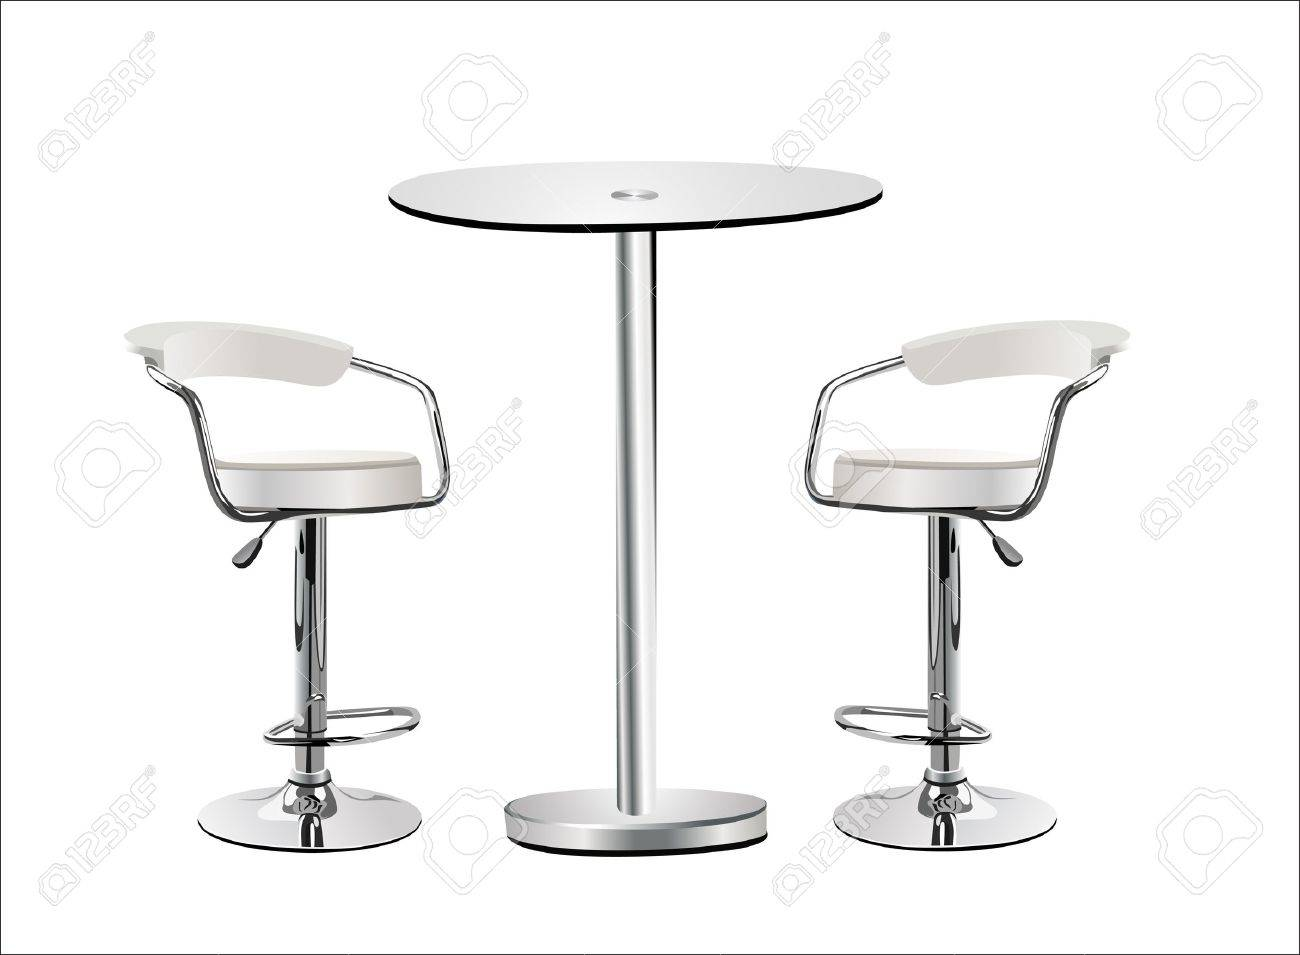 high glass top table w chairs on white background stock vector